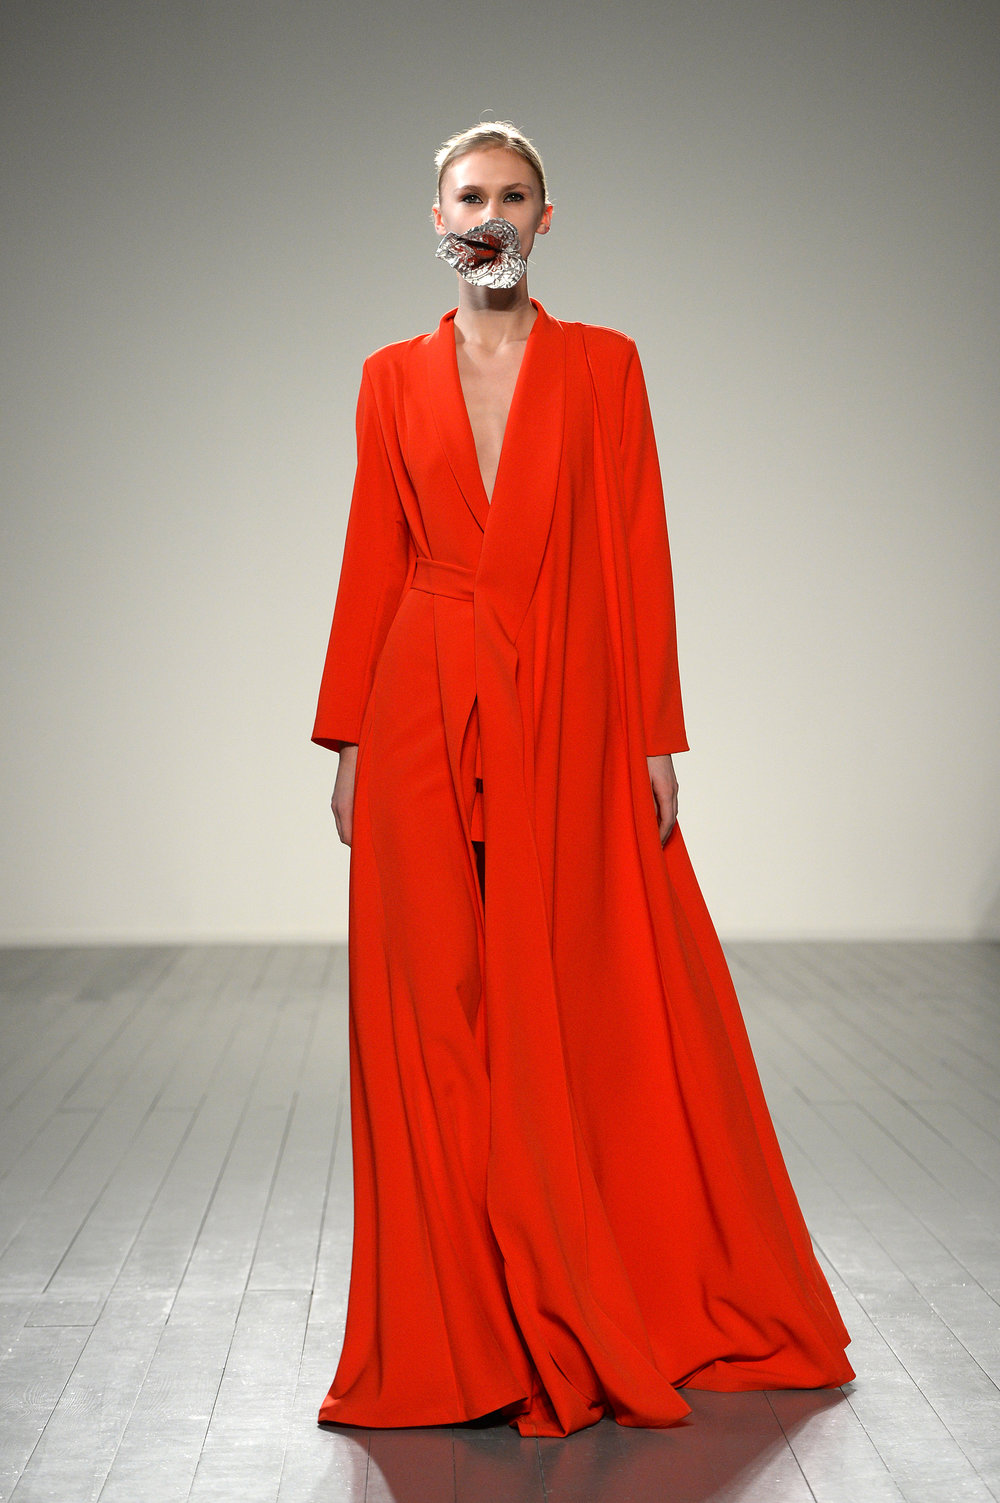 marta jakubowski - FALL/WINTER 2019